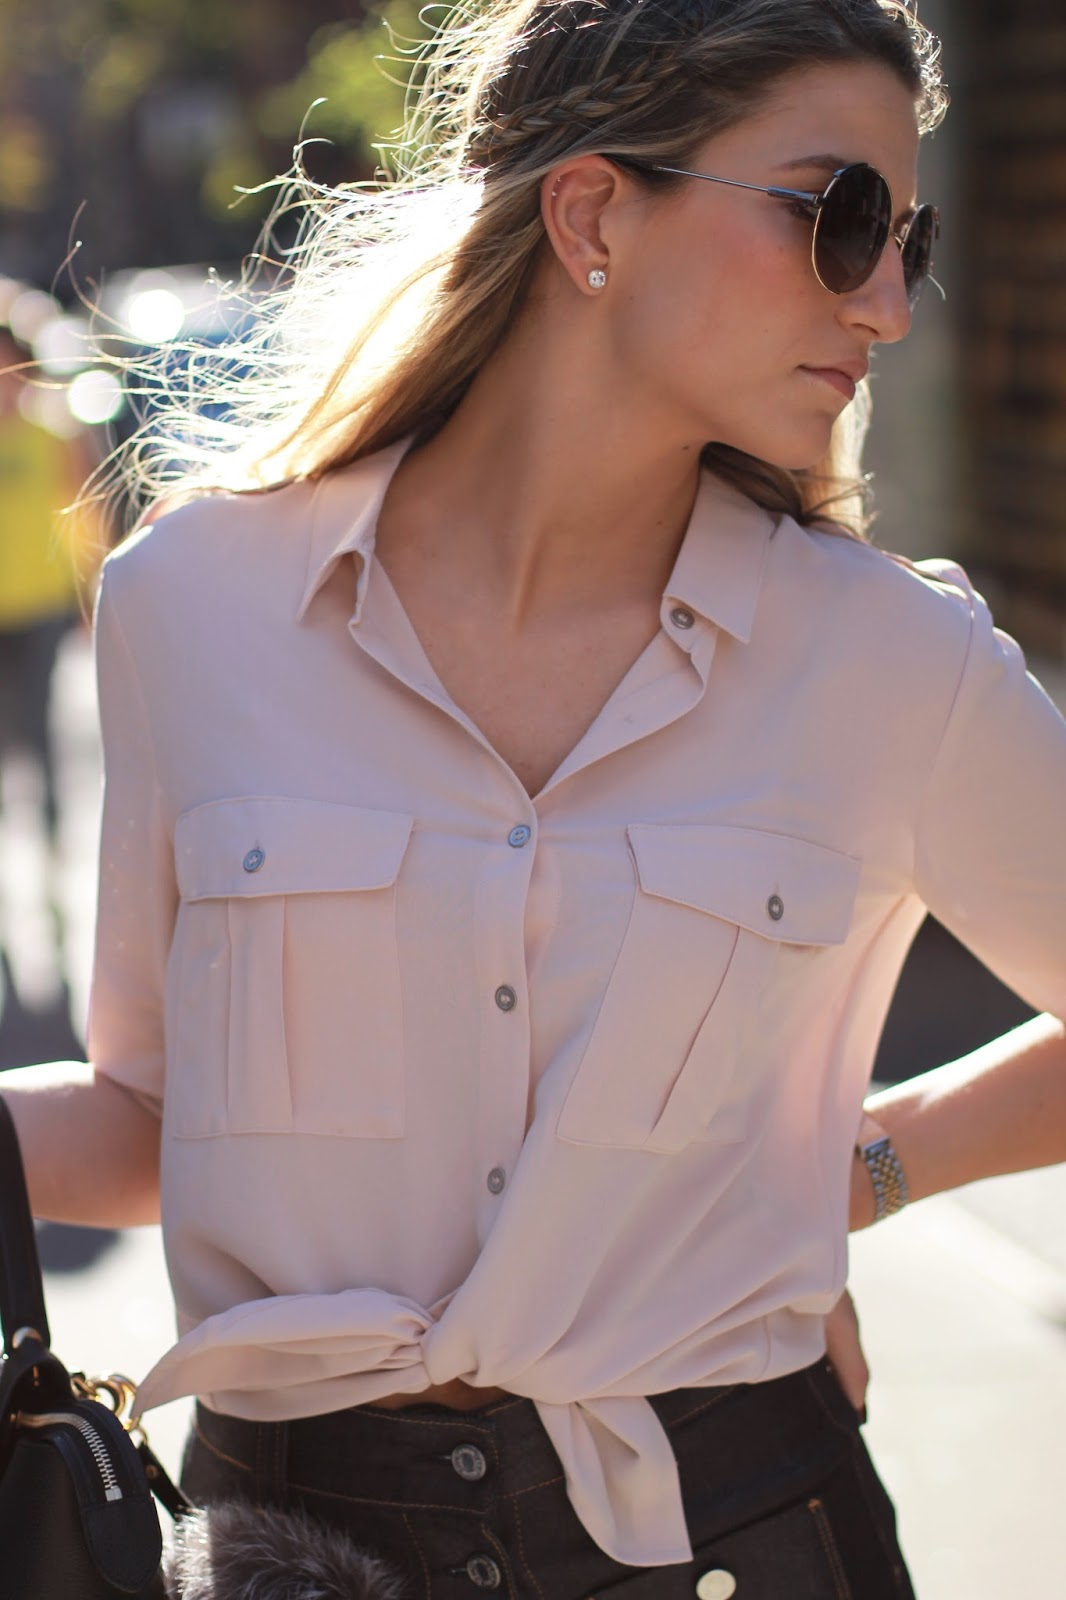 forever21 chiffon collar shirt, forever21 tie front top